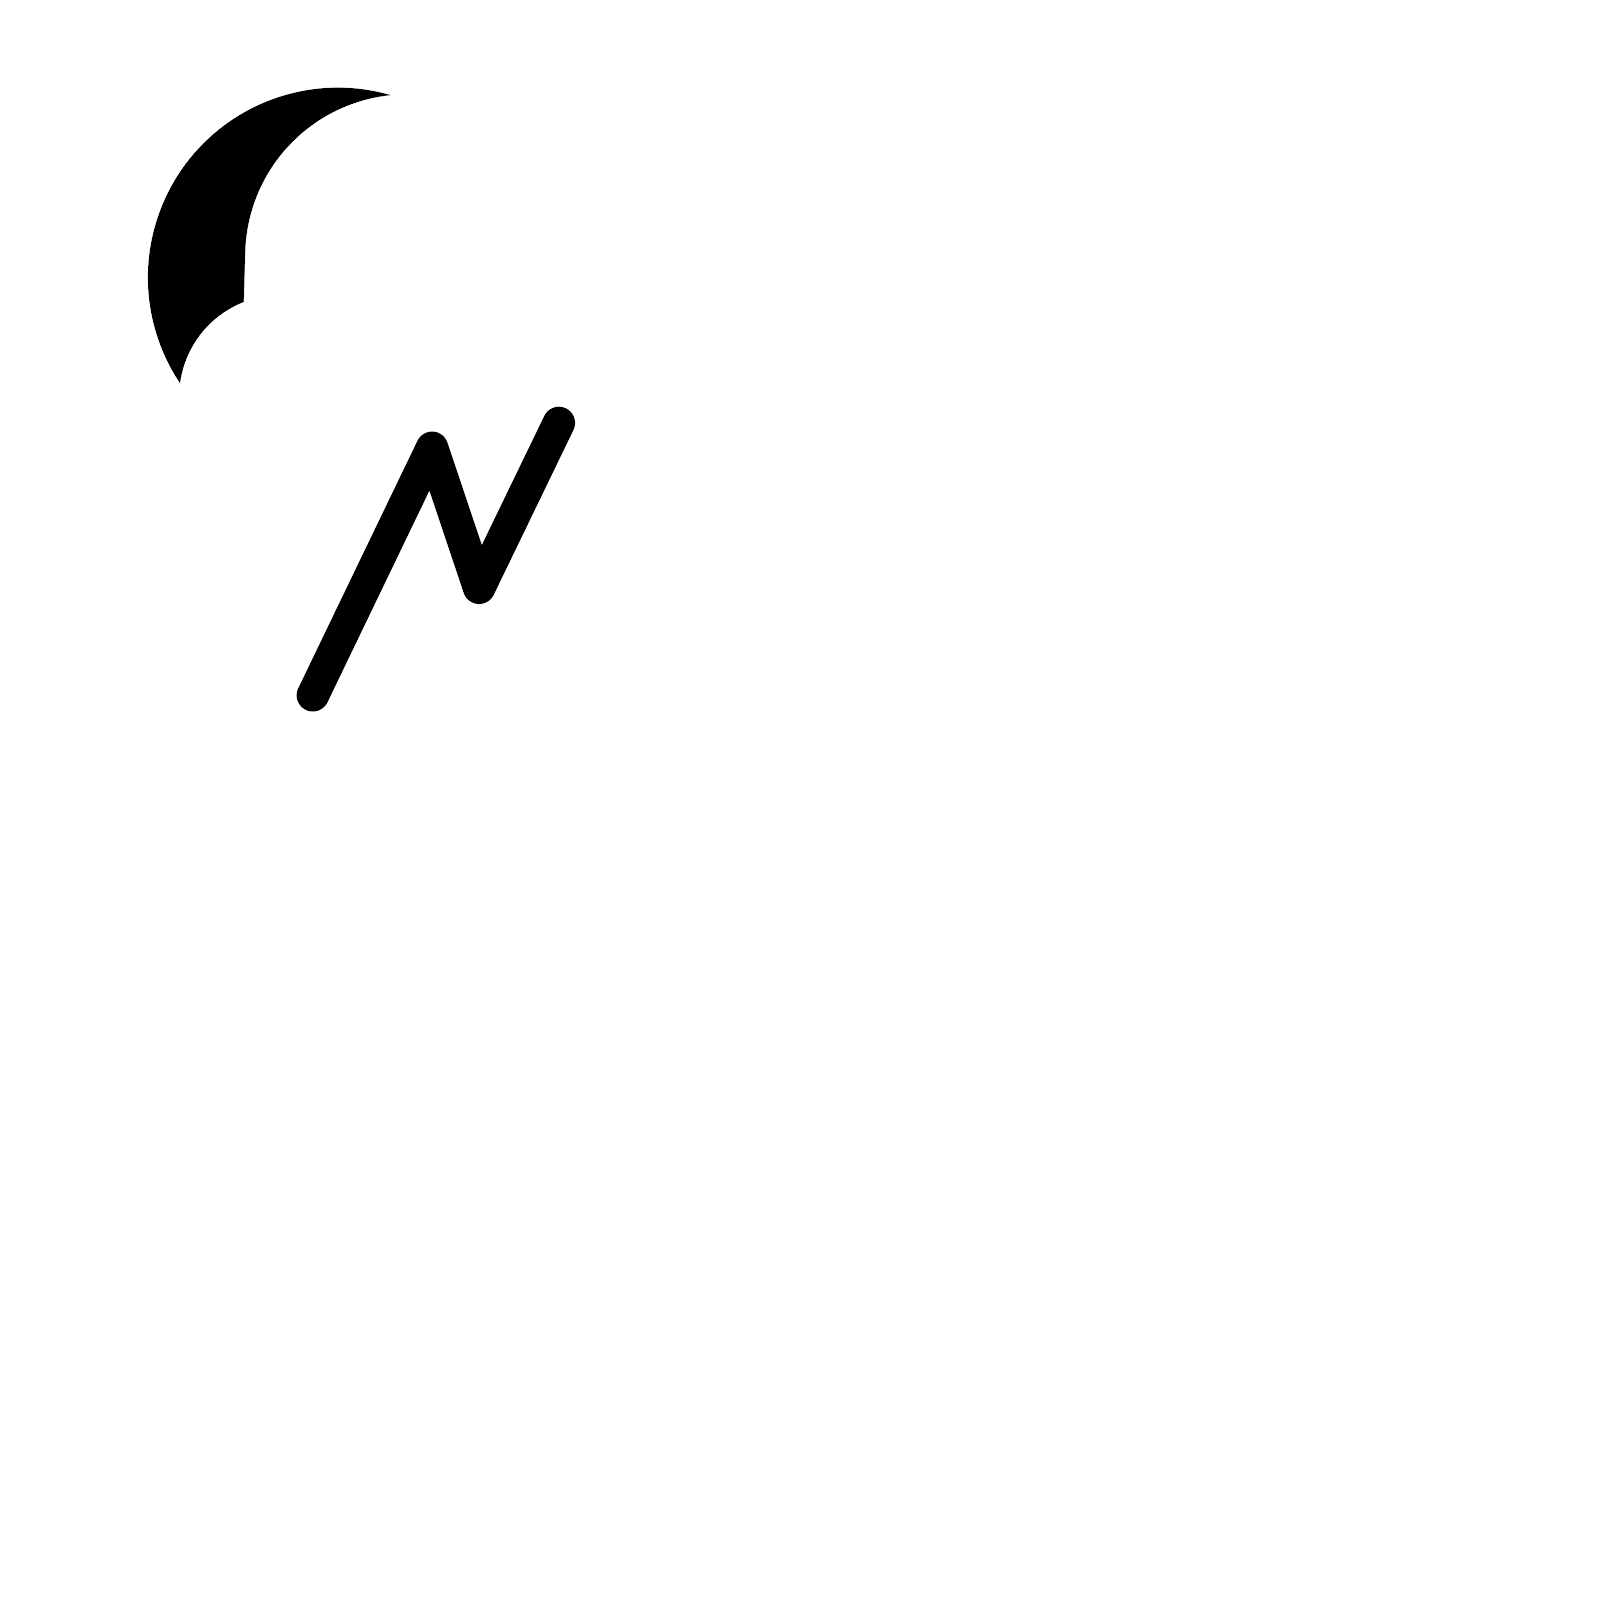 Nachturne Design Labs, LLC